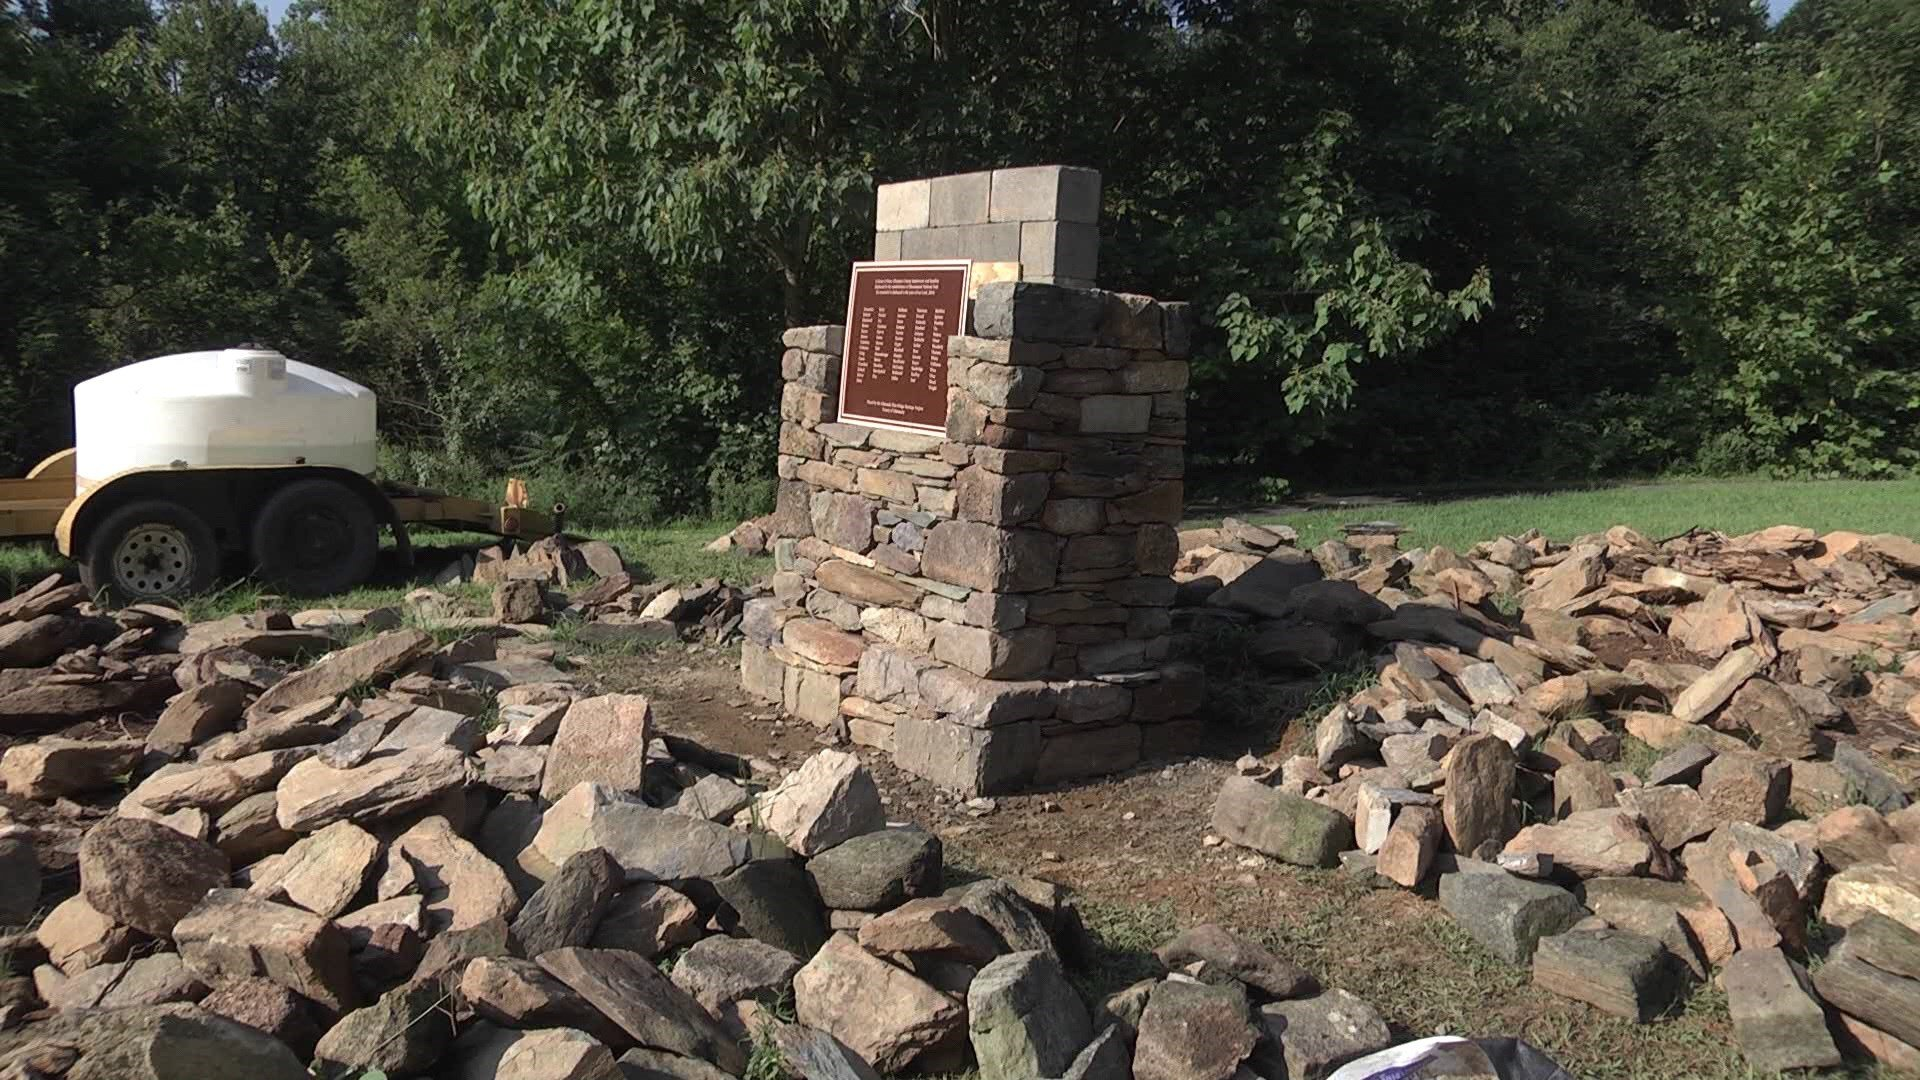 Work on a new memorial for Albemarle County families displaced by the creation of Shenandoah National Park